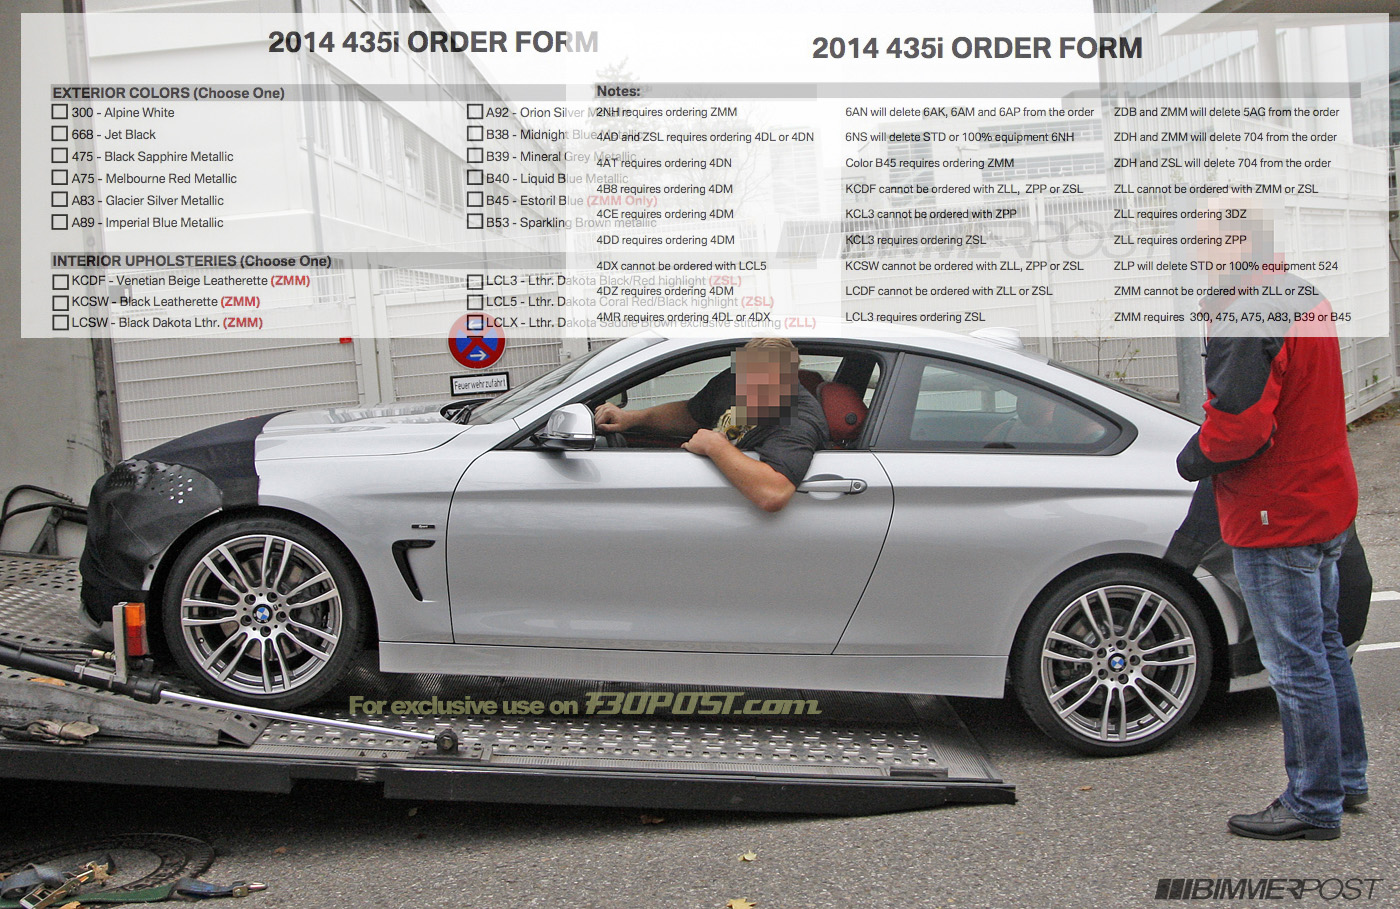 2014 BMW 435i and 428i Order Guides Reveal Lines, Options and Packages